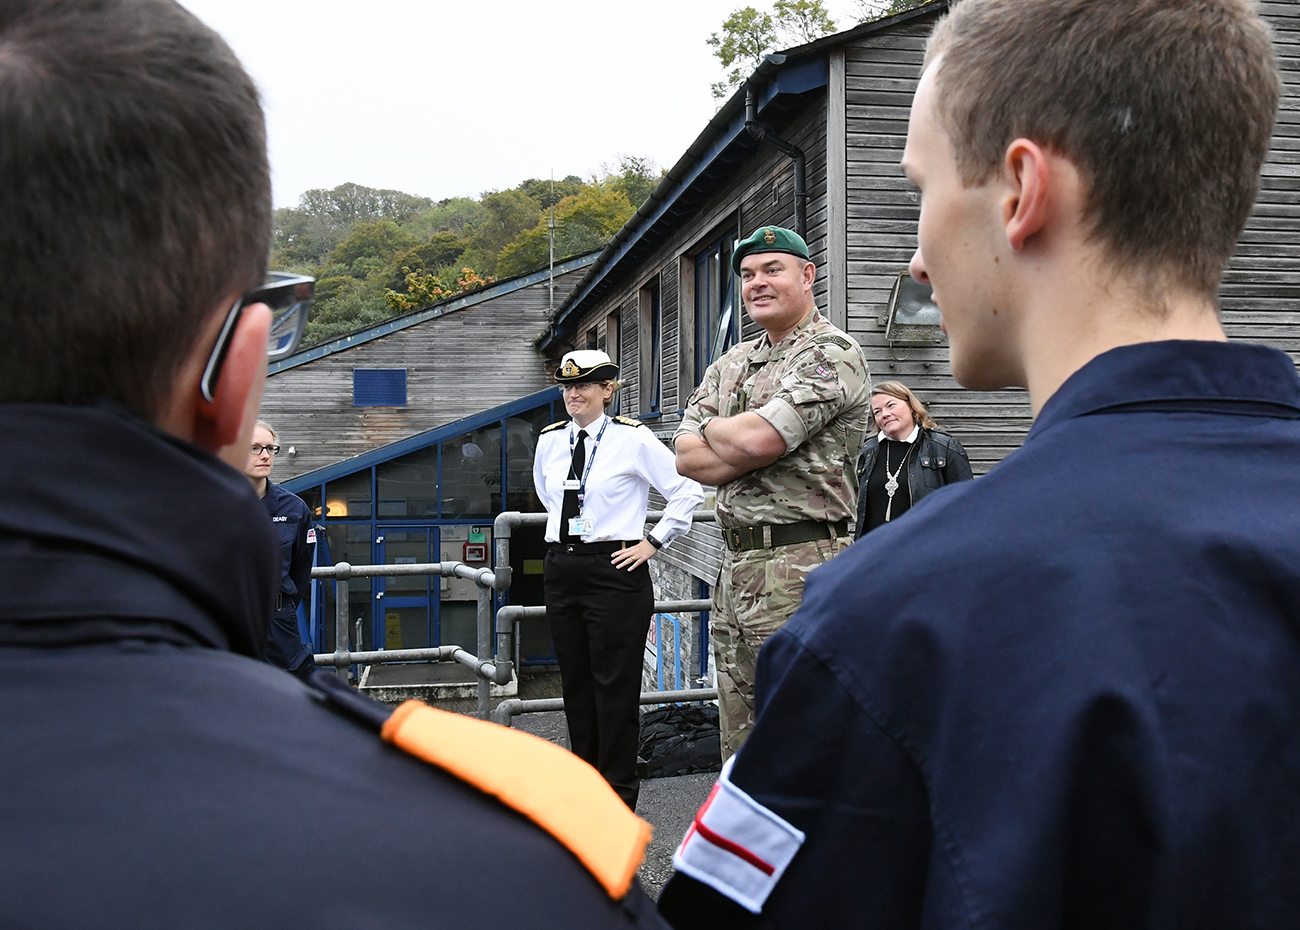 Commandant of CTC visits HMS Raleigh